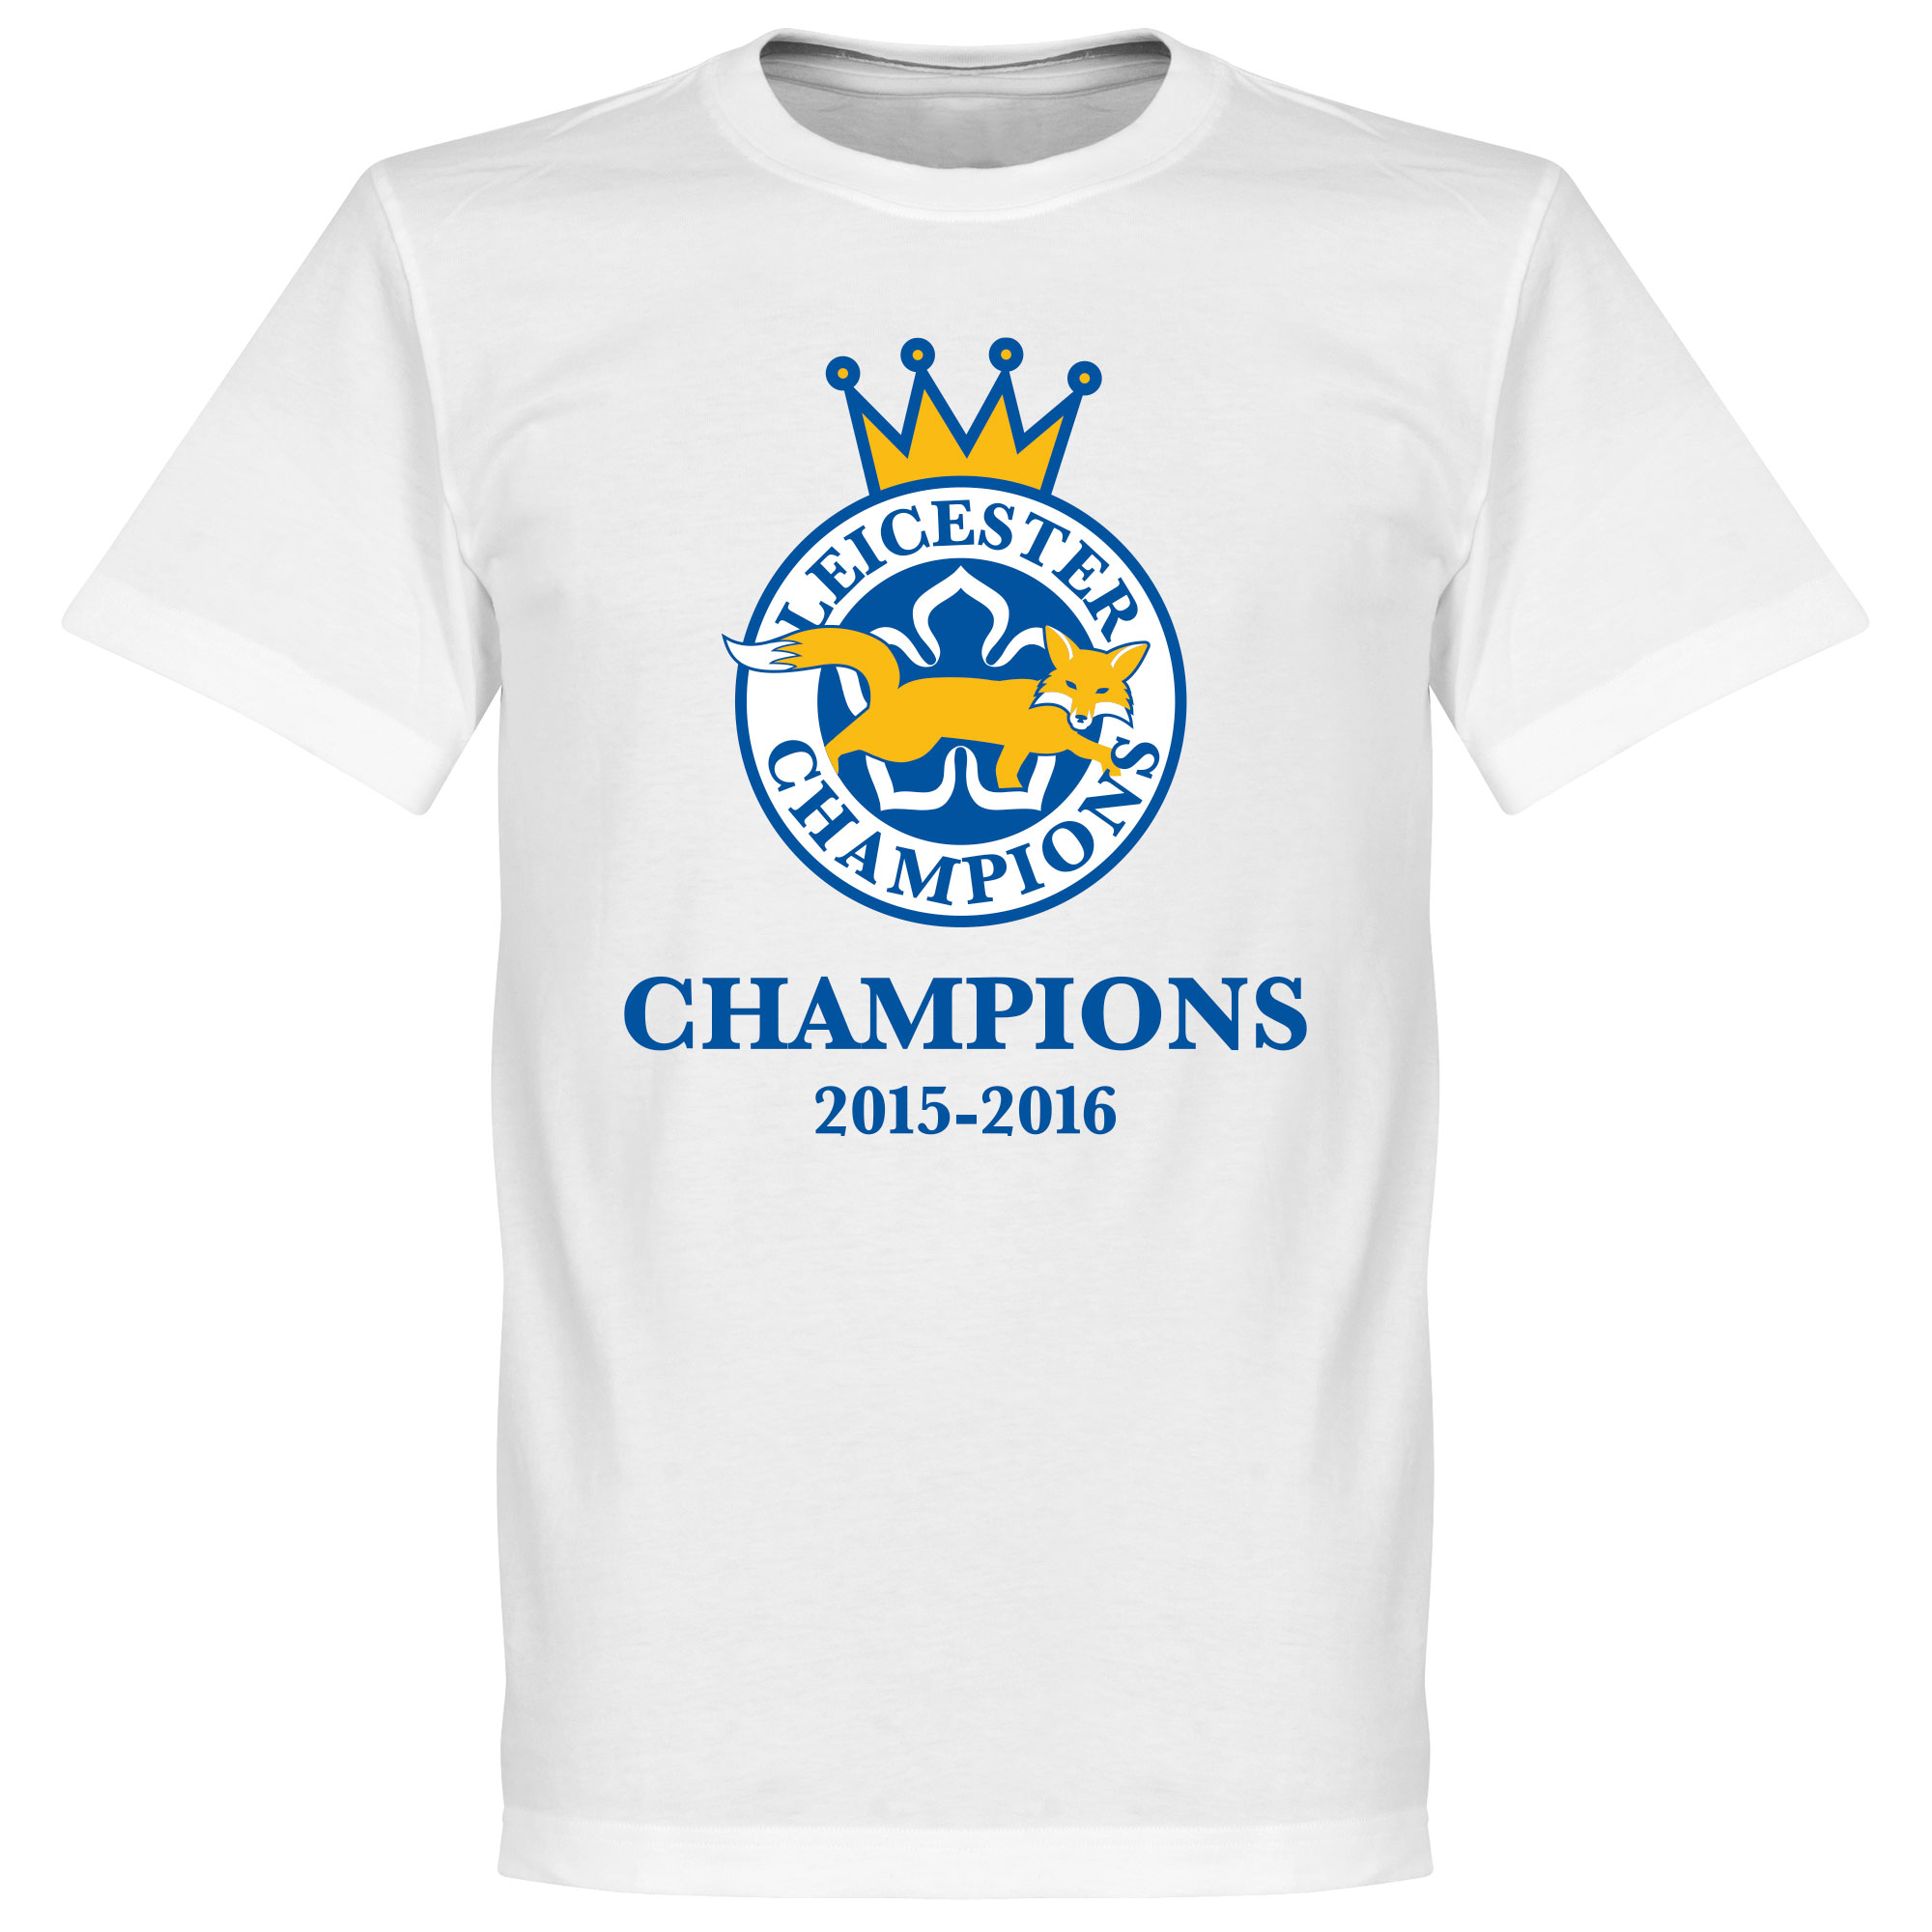 Leicester Foxes Champions 2016 Tee - White - M